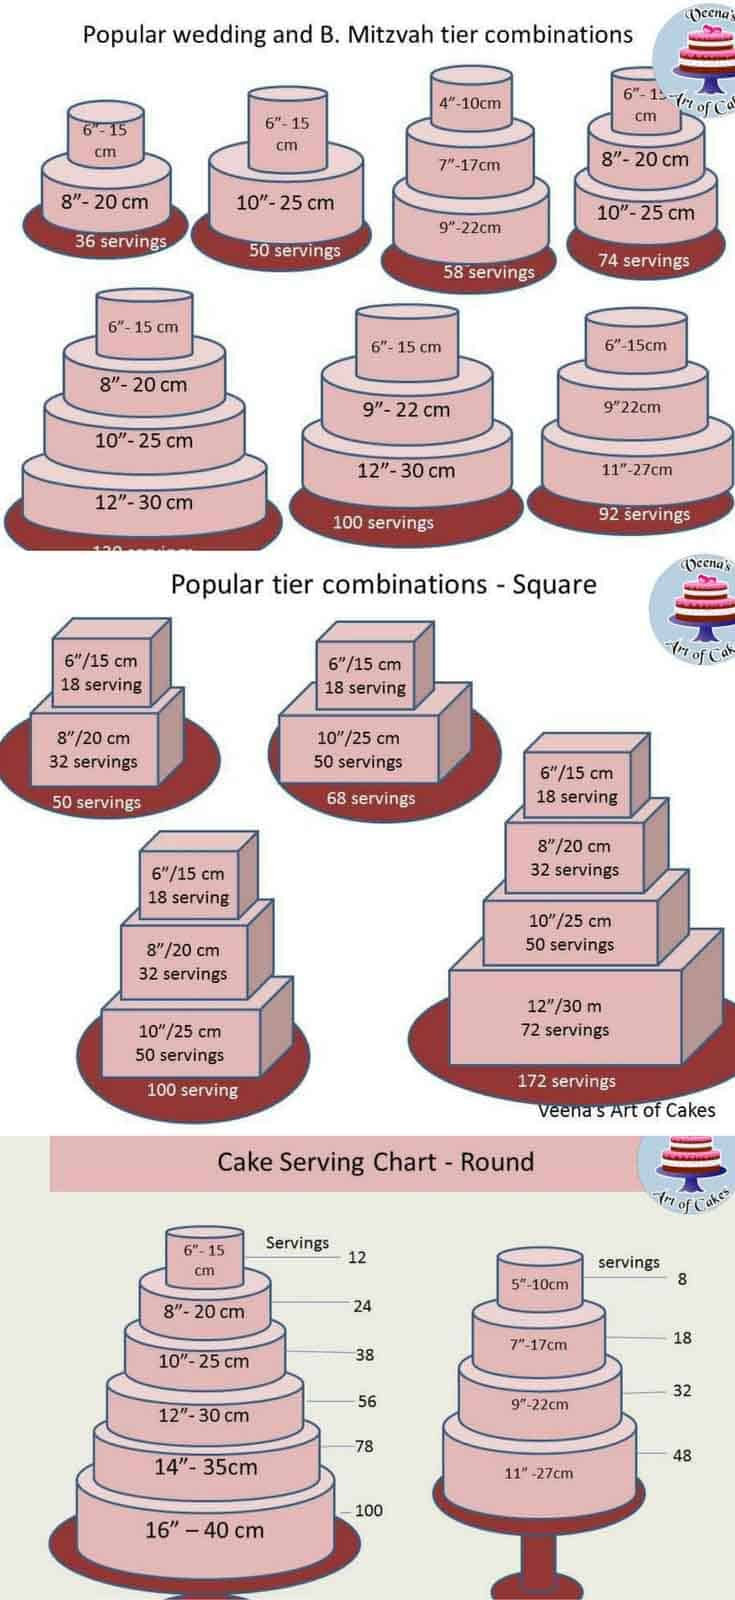 As a Cake Decorator we all need basic Cake Serving Chart Guides and Popular Tier Combination guides that are necessary when conducting a Cake Consultation. These charts come in handy for me when I need a quick reference and I hope they will come in handy for you too.